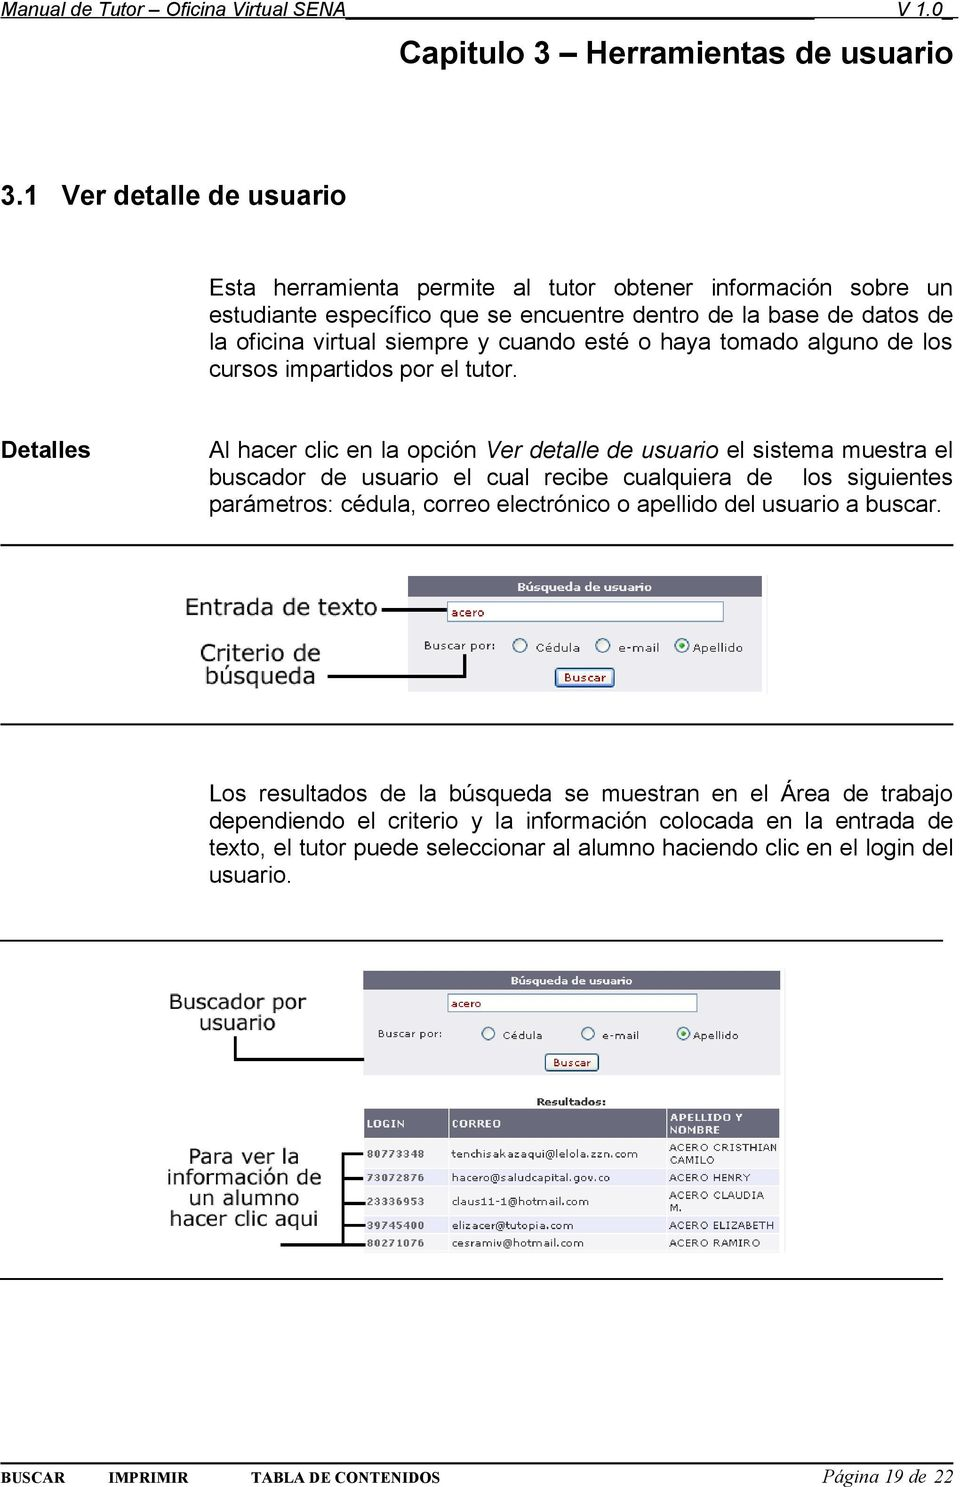 Oficina virtual sis manual de tutor pdf for Oficina virtual correos